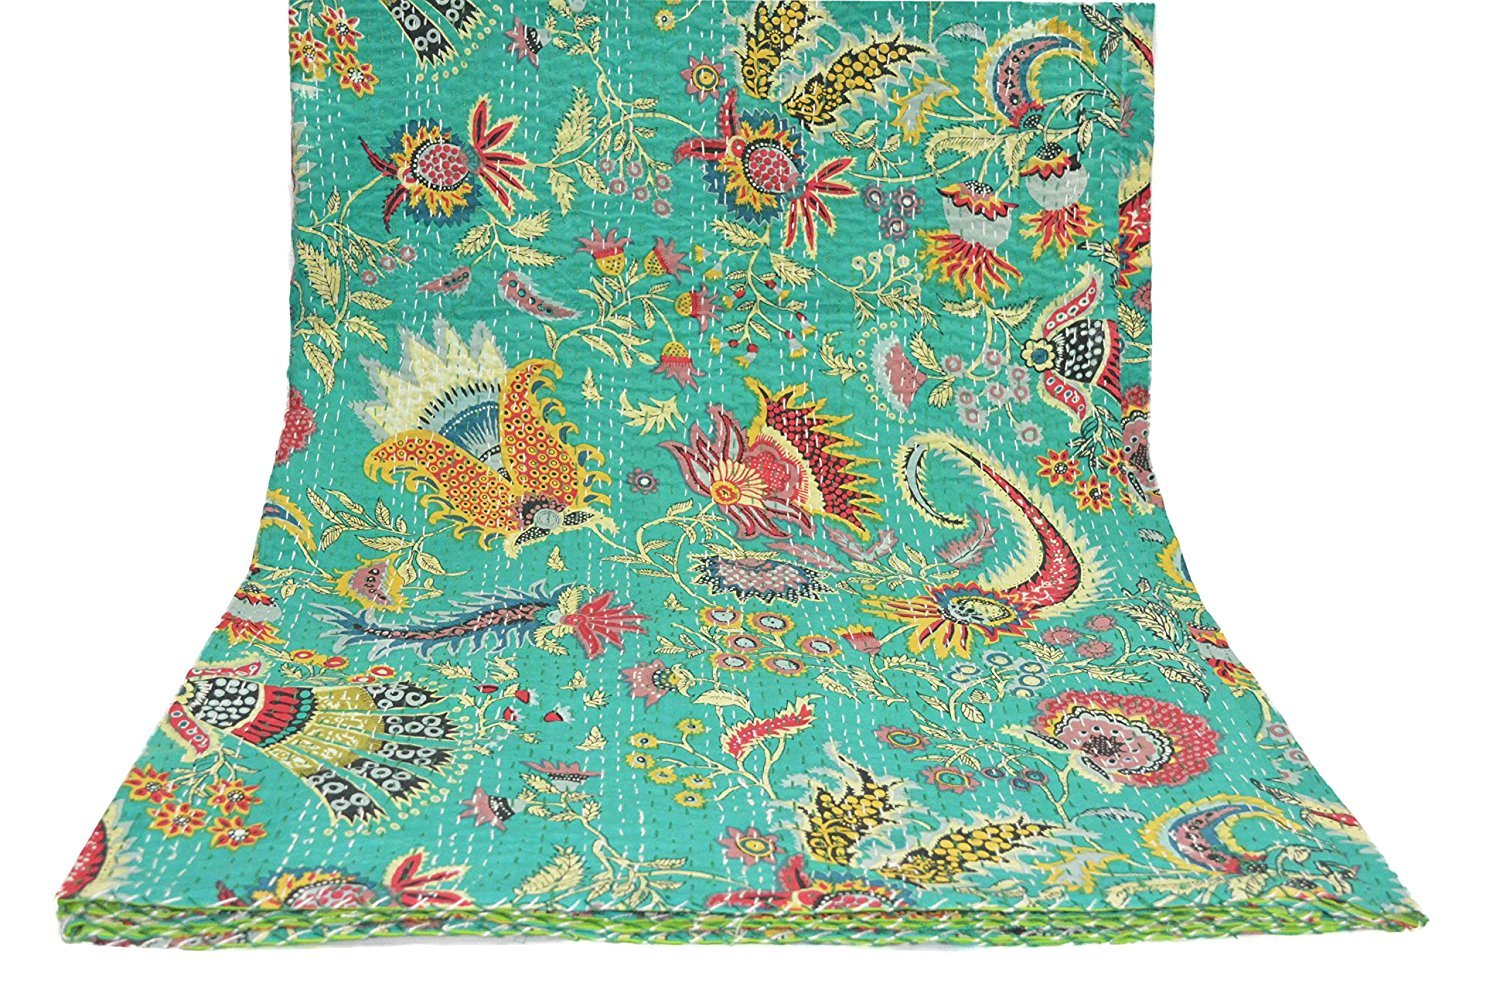 Twin Mukut Print Single Kantha Quilt, Kantha Blanket, Bed Cover, Twin Kantha bedspread, Bohemian Bedding Size 60X90 Inch (Multi) Sophia Art